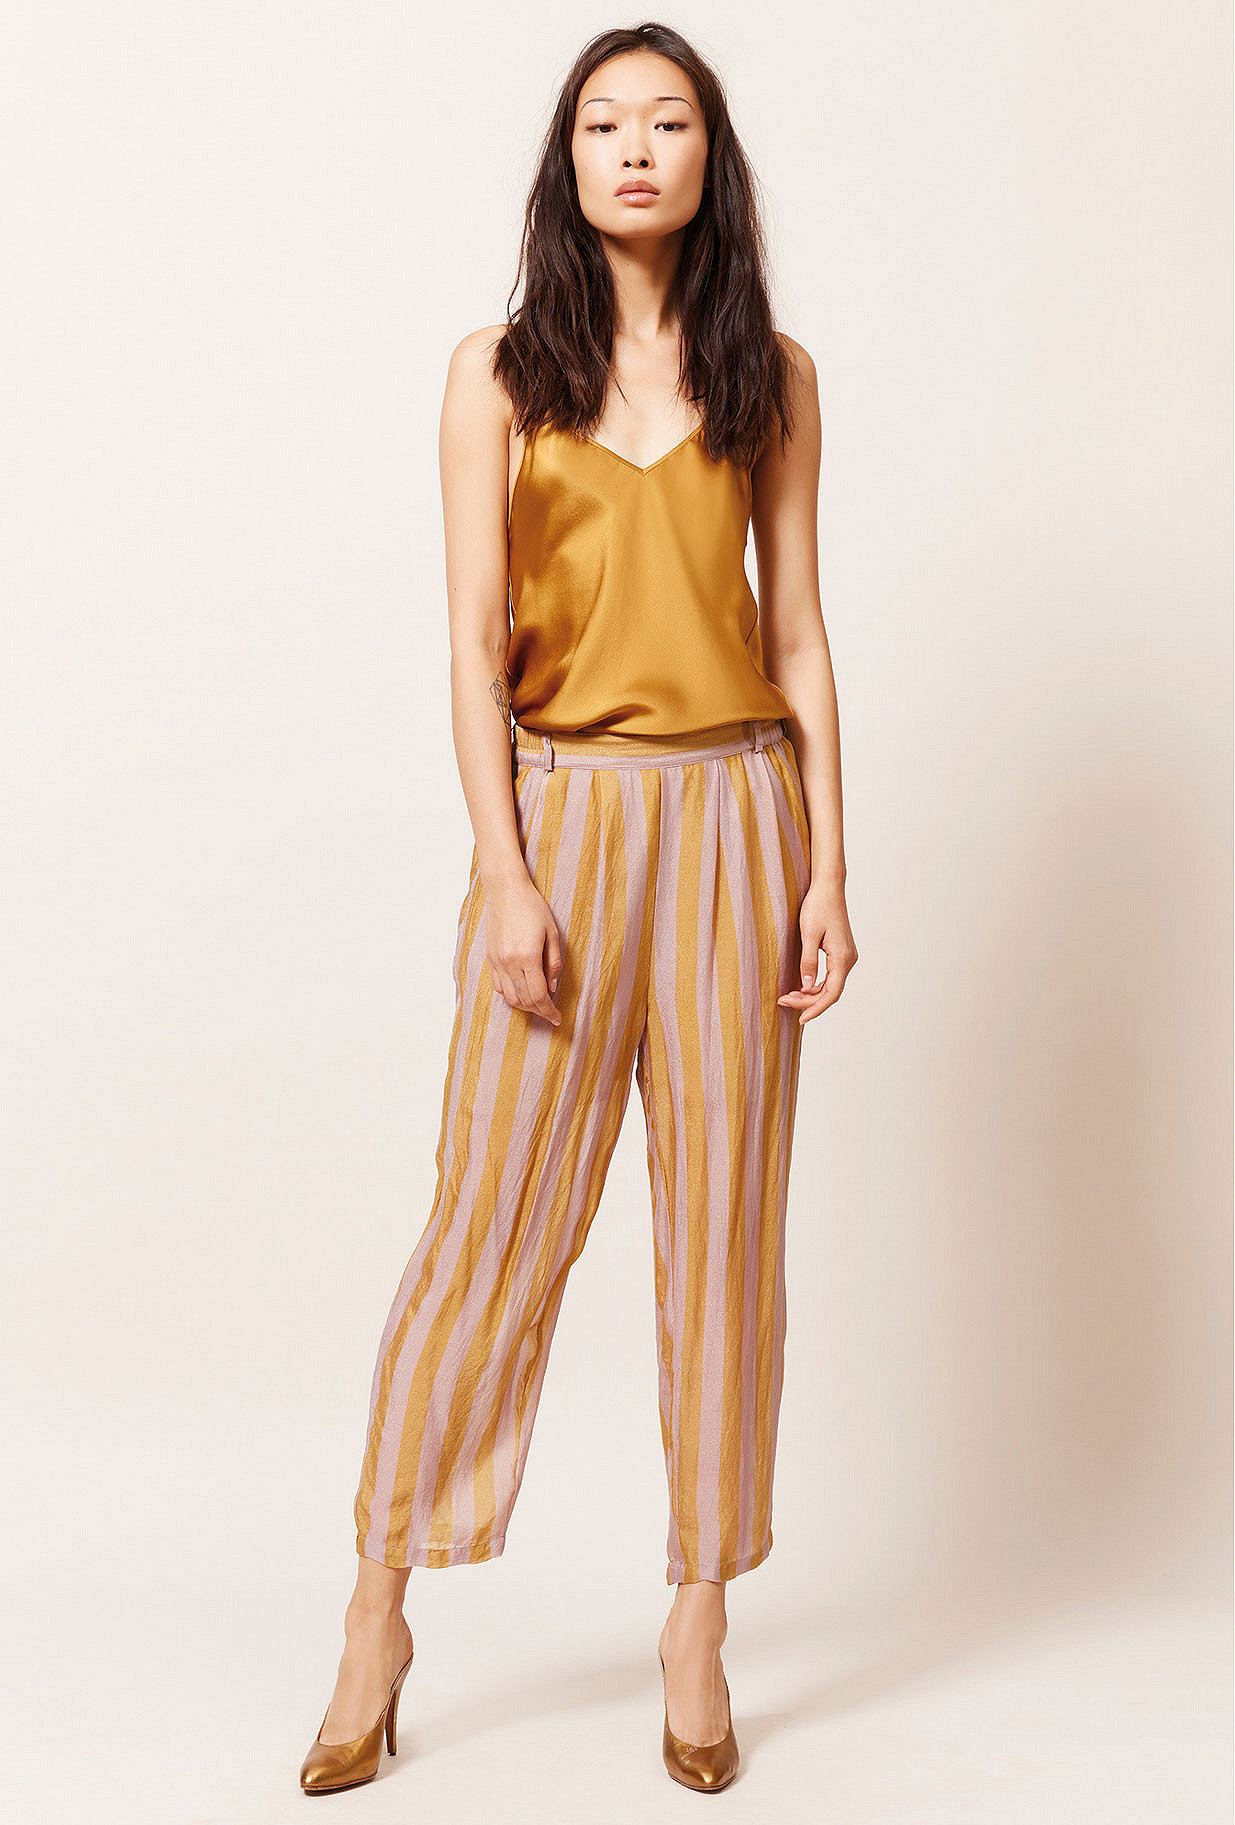 Ocre  Pant  Havas Mes demoiselles fashion clothes designer Paris